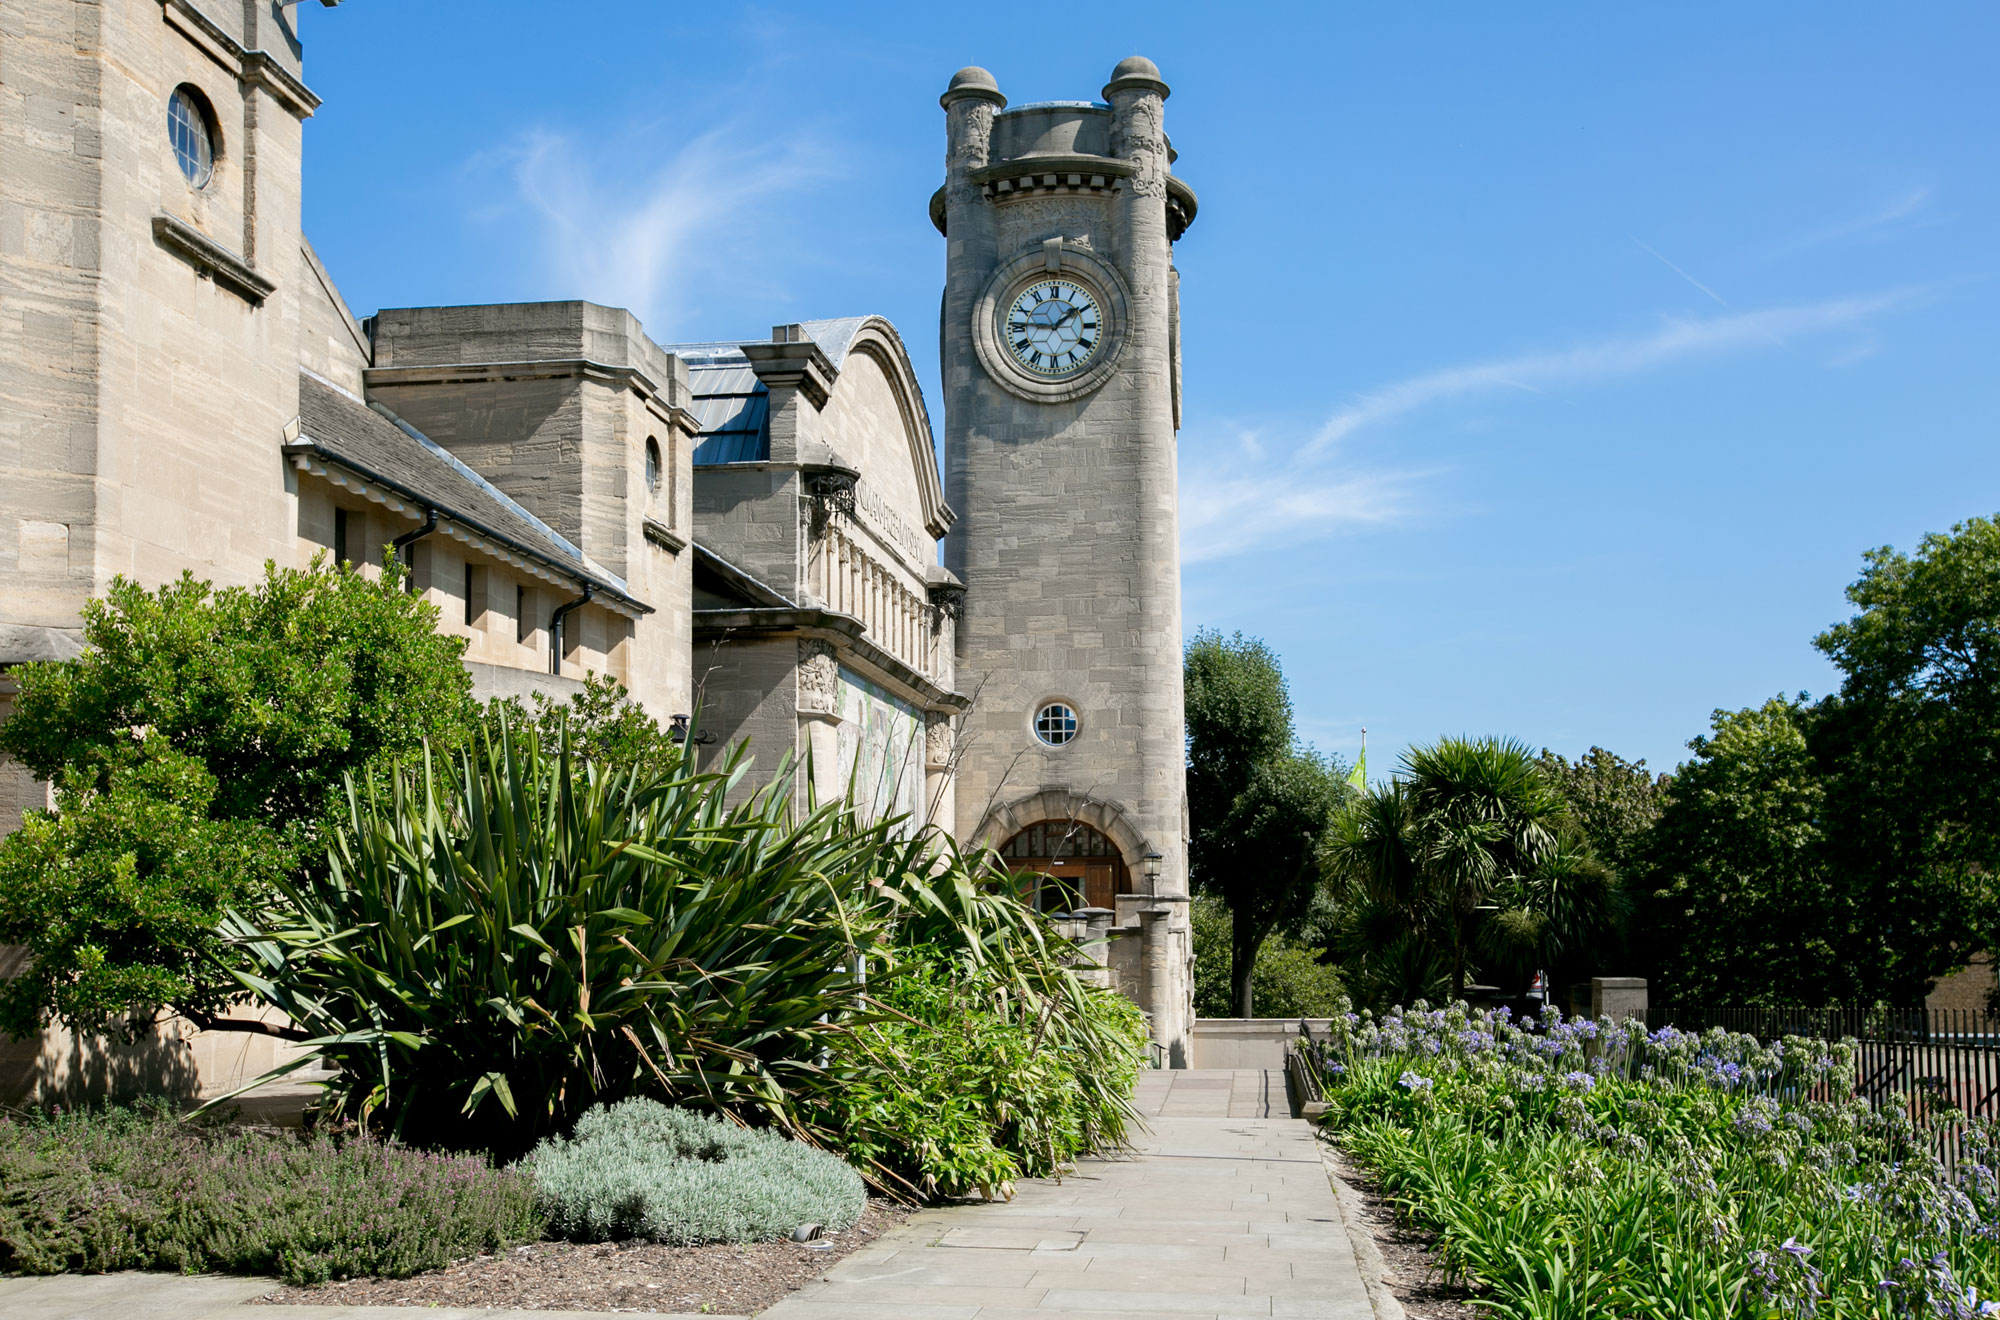 A tall square tower with rounded edges. It has four small rounded turrets at the top and a clockface near the top of the tower. There is a door (just seen) in the base. Buildings stretch out from the Clocktower towards the camera on the left, with small trees and shrubs in front. There is a flower bed on the right hand side and a path leading between them to the tower. The day is sunny and the sky is blue.